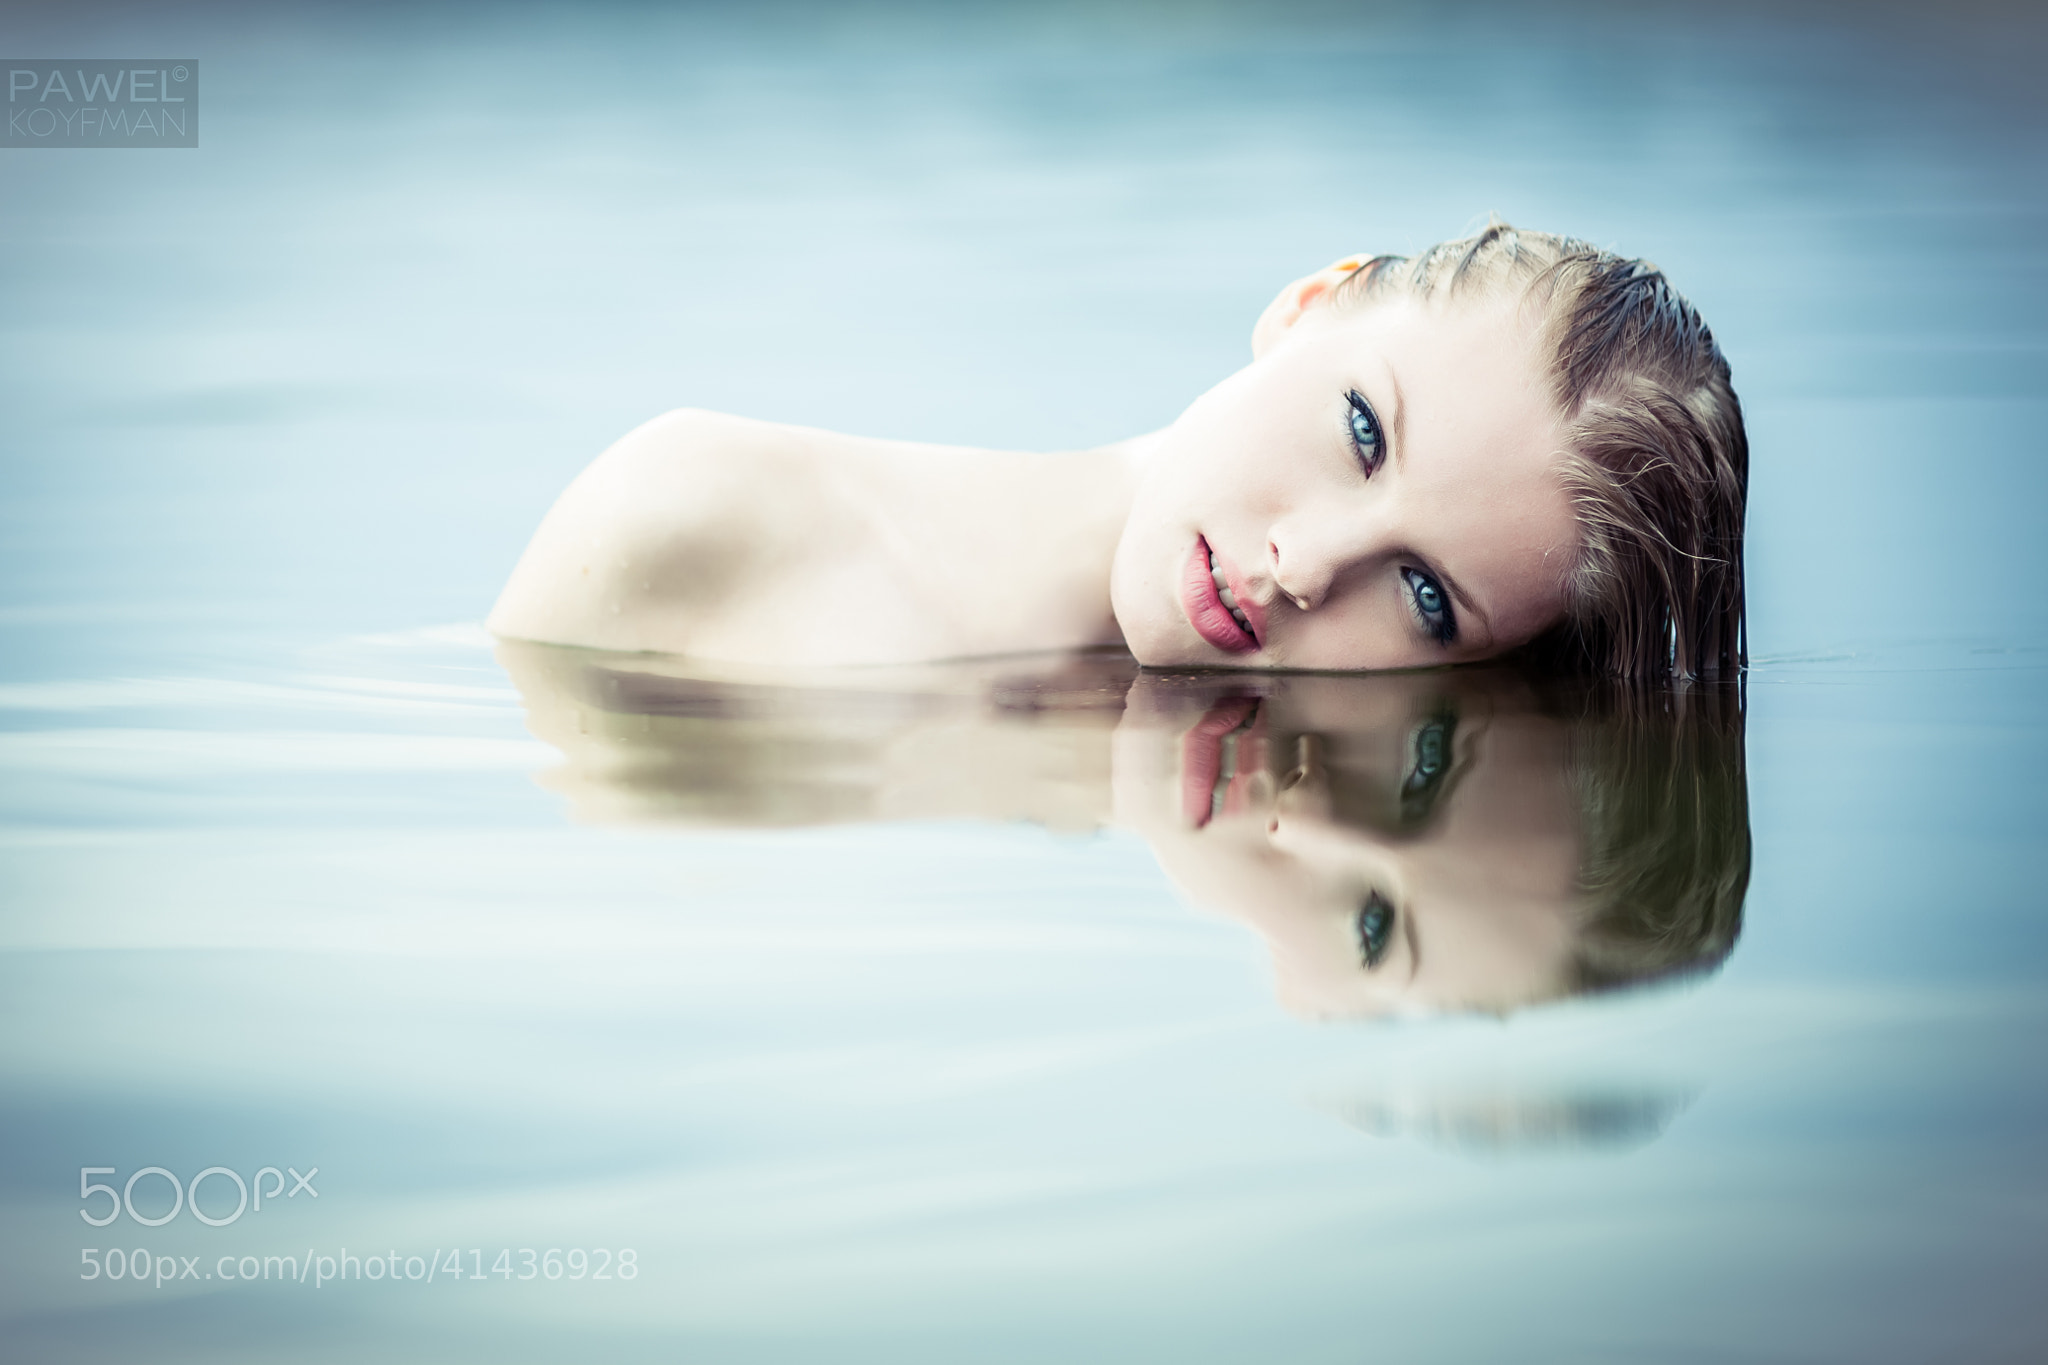 Photograph Verena by Pawel Koyfman on 500px